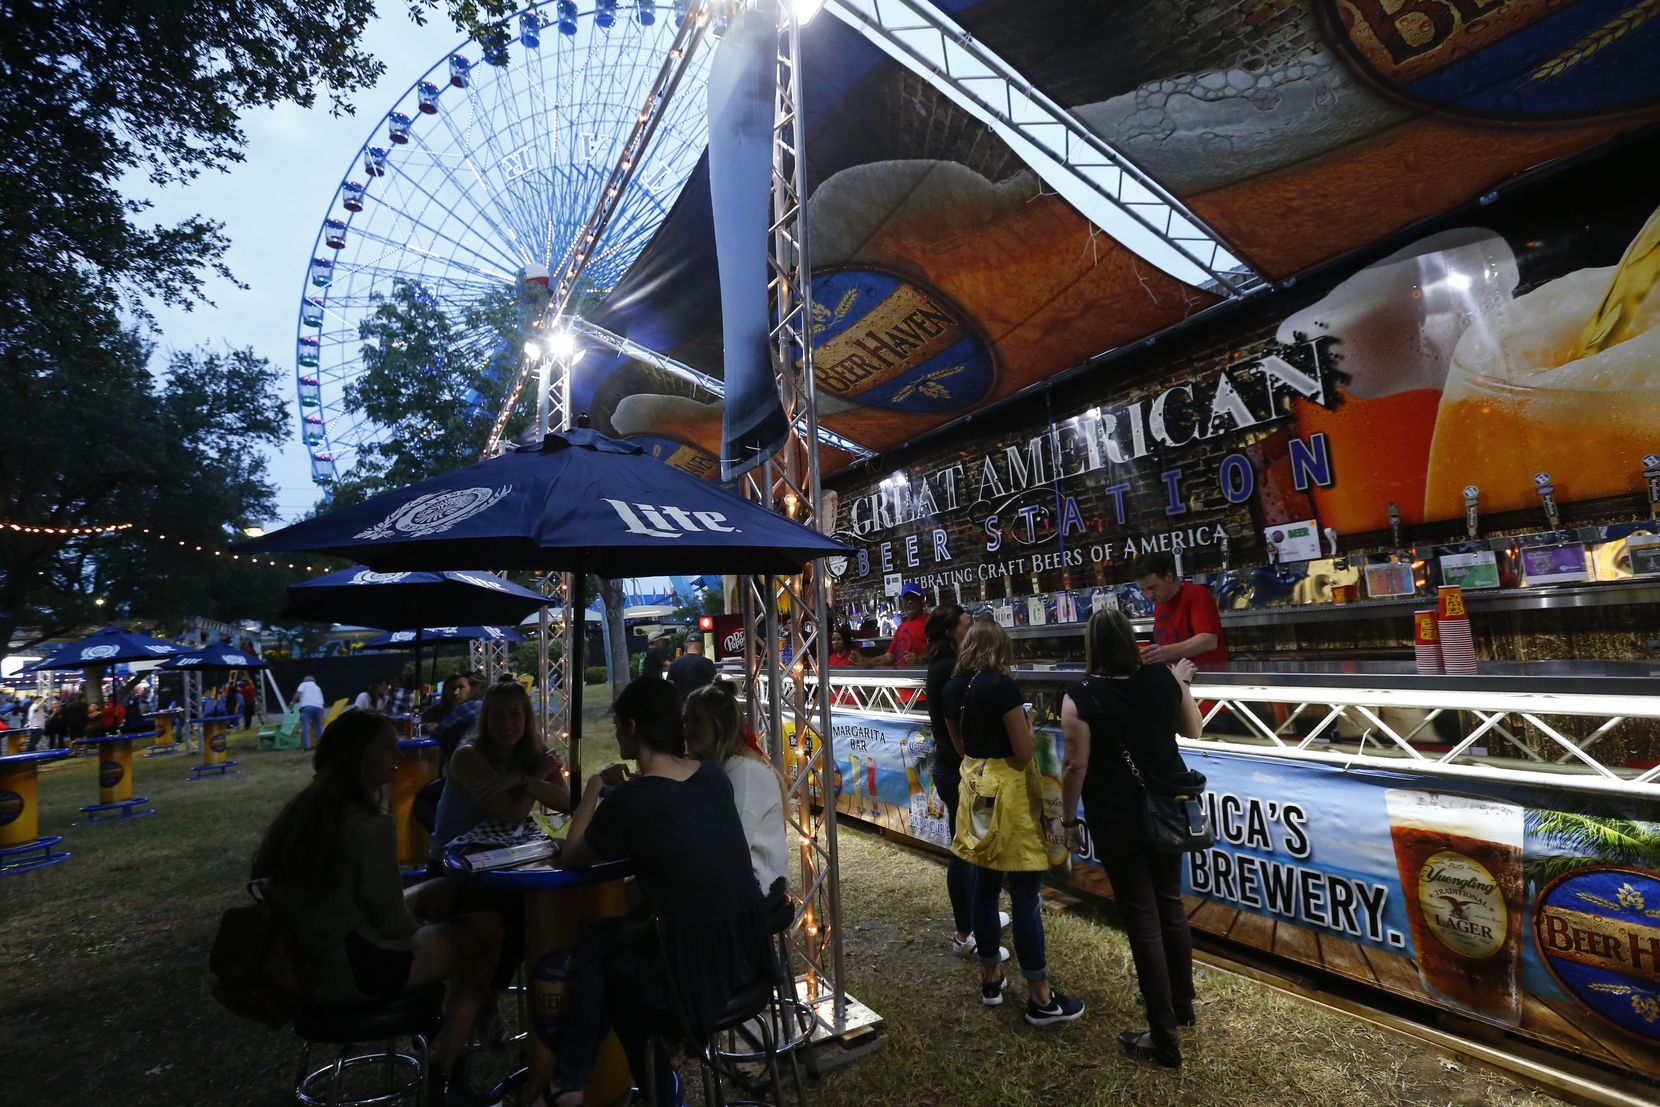 People order beers at the Beer Haven under the Ferris wheel during the State Fair of Texas in Dallas in 2017. The 2021 State Fair will be held Sept. 24 through Oct. 17.